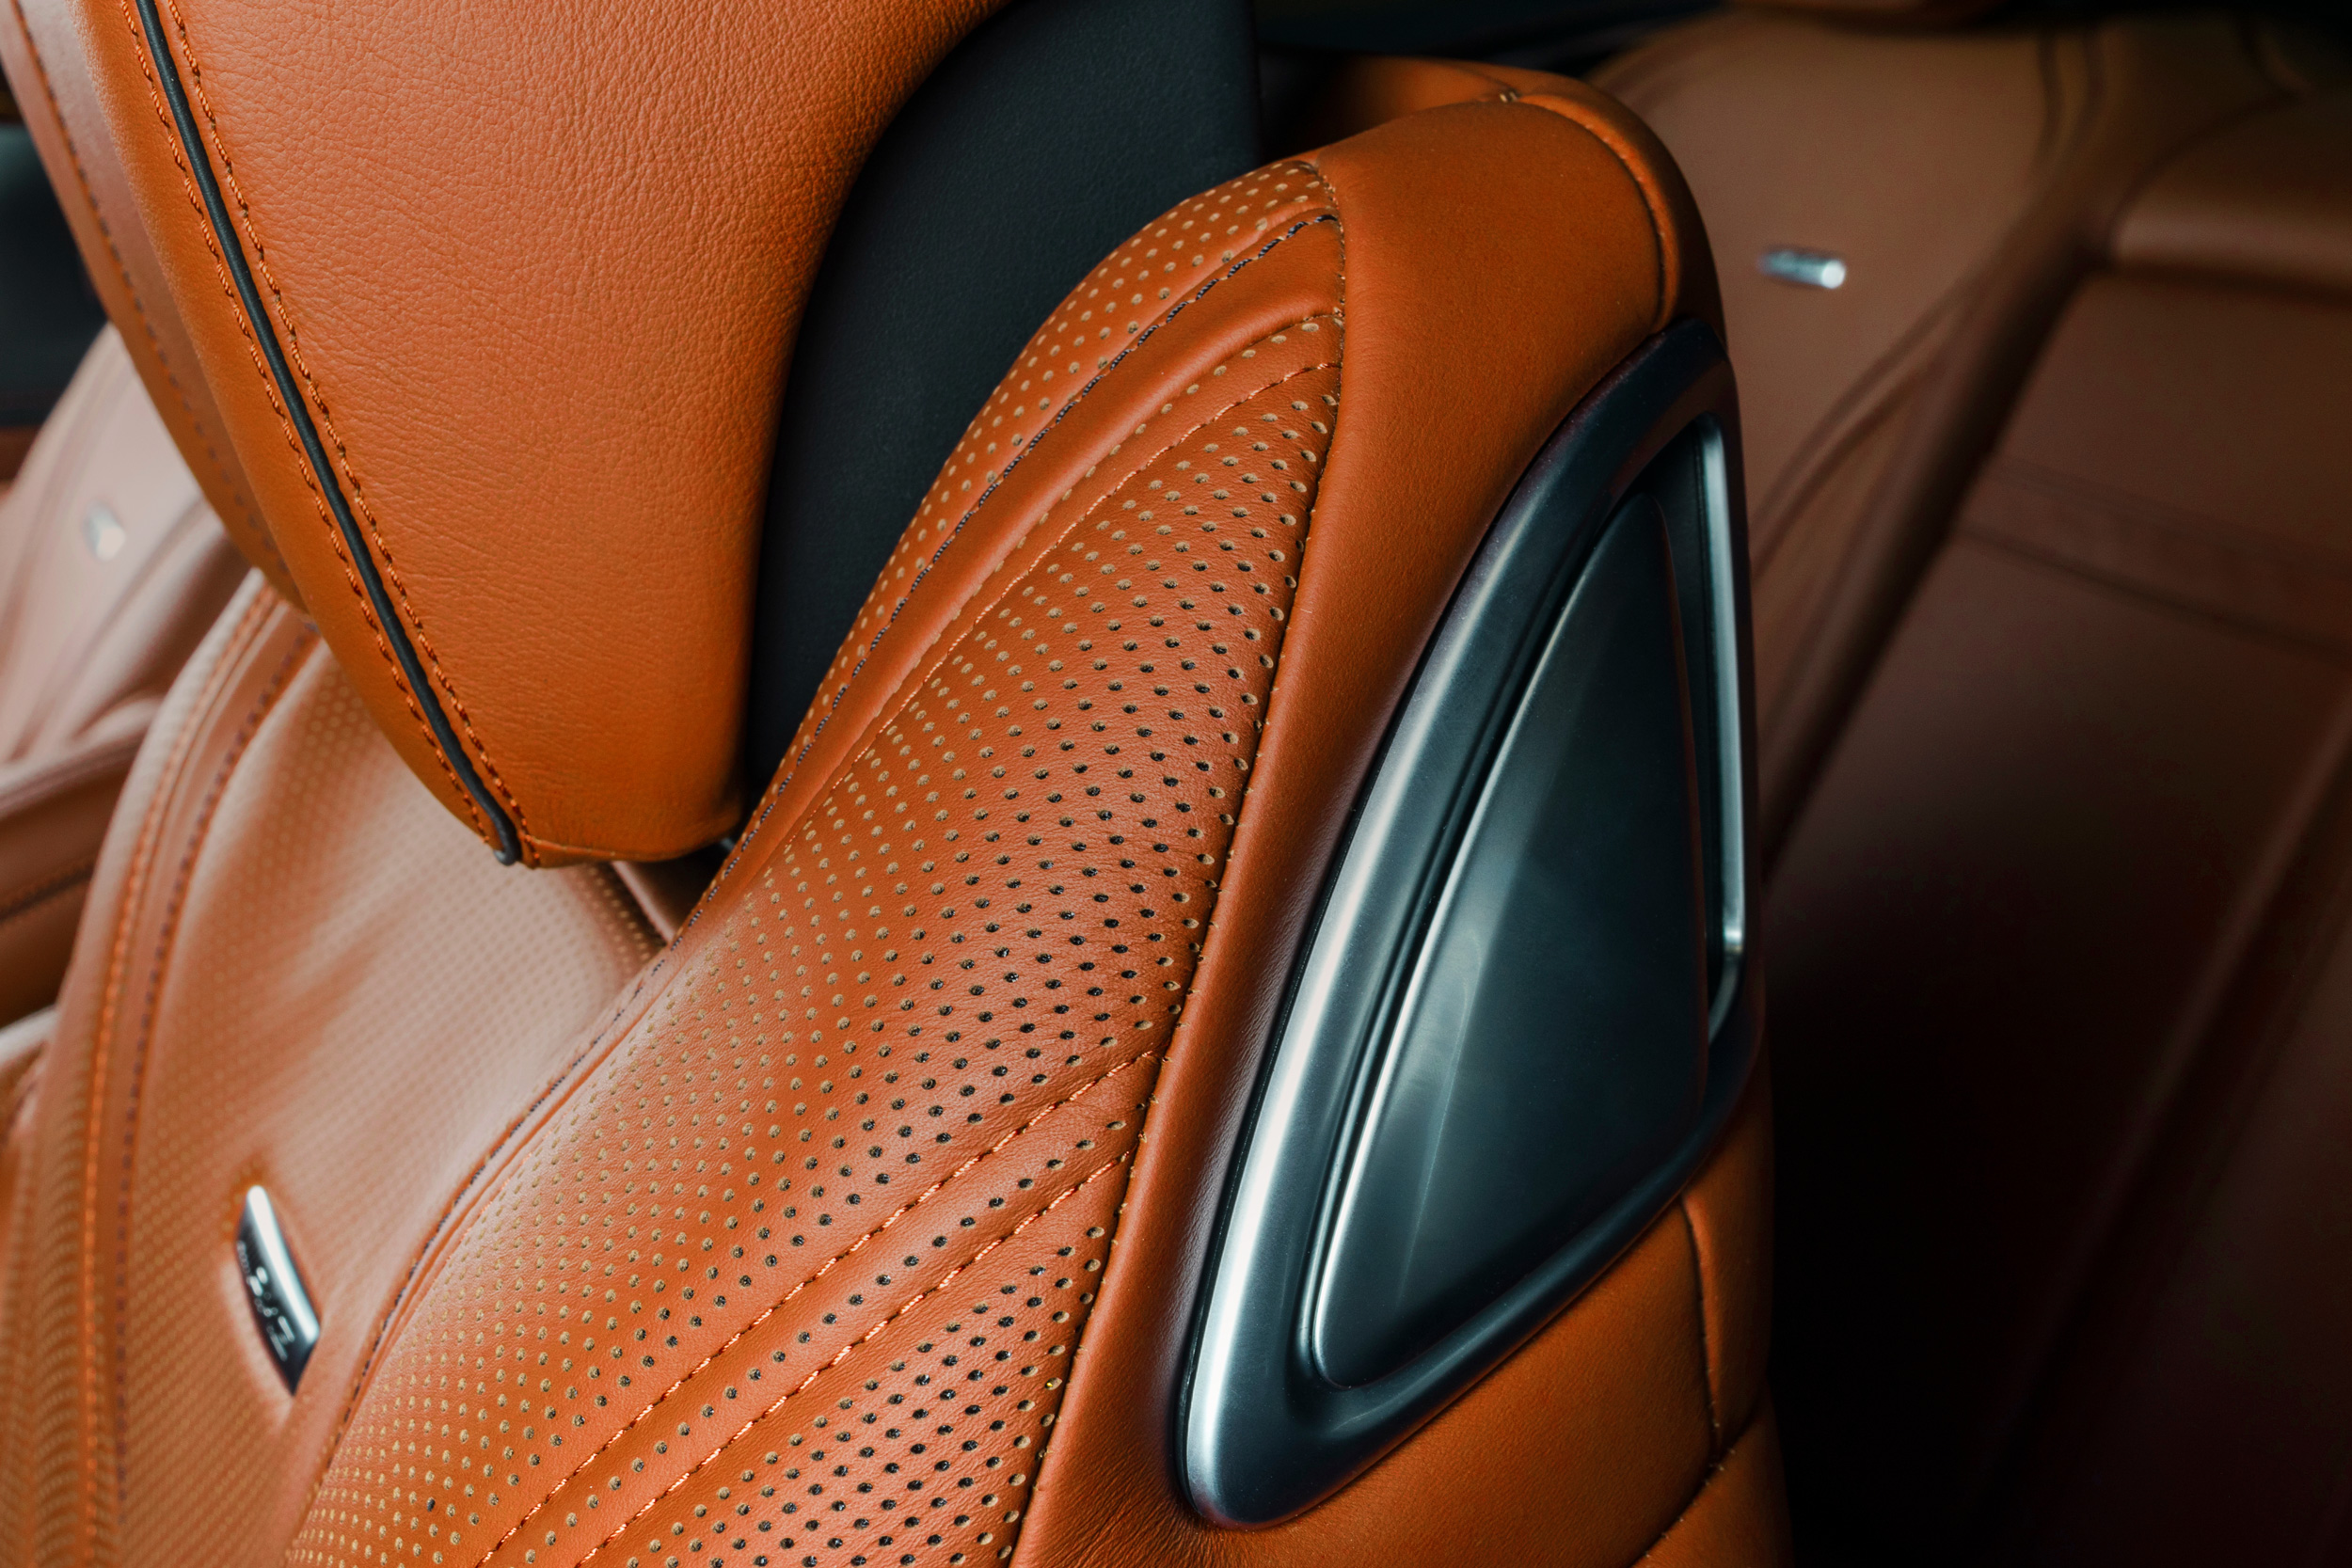 Leather for automotive interiors